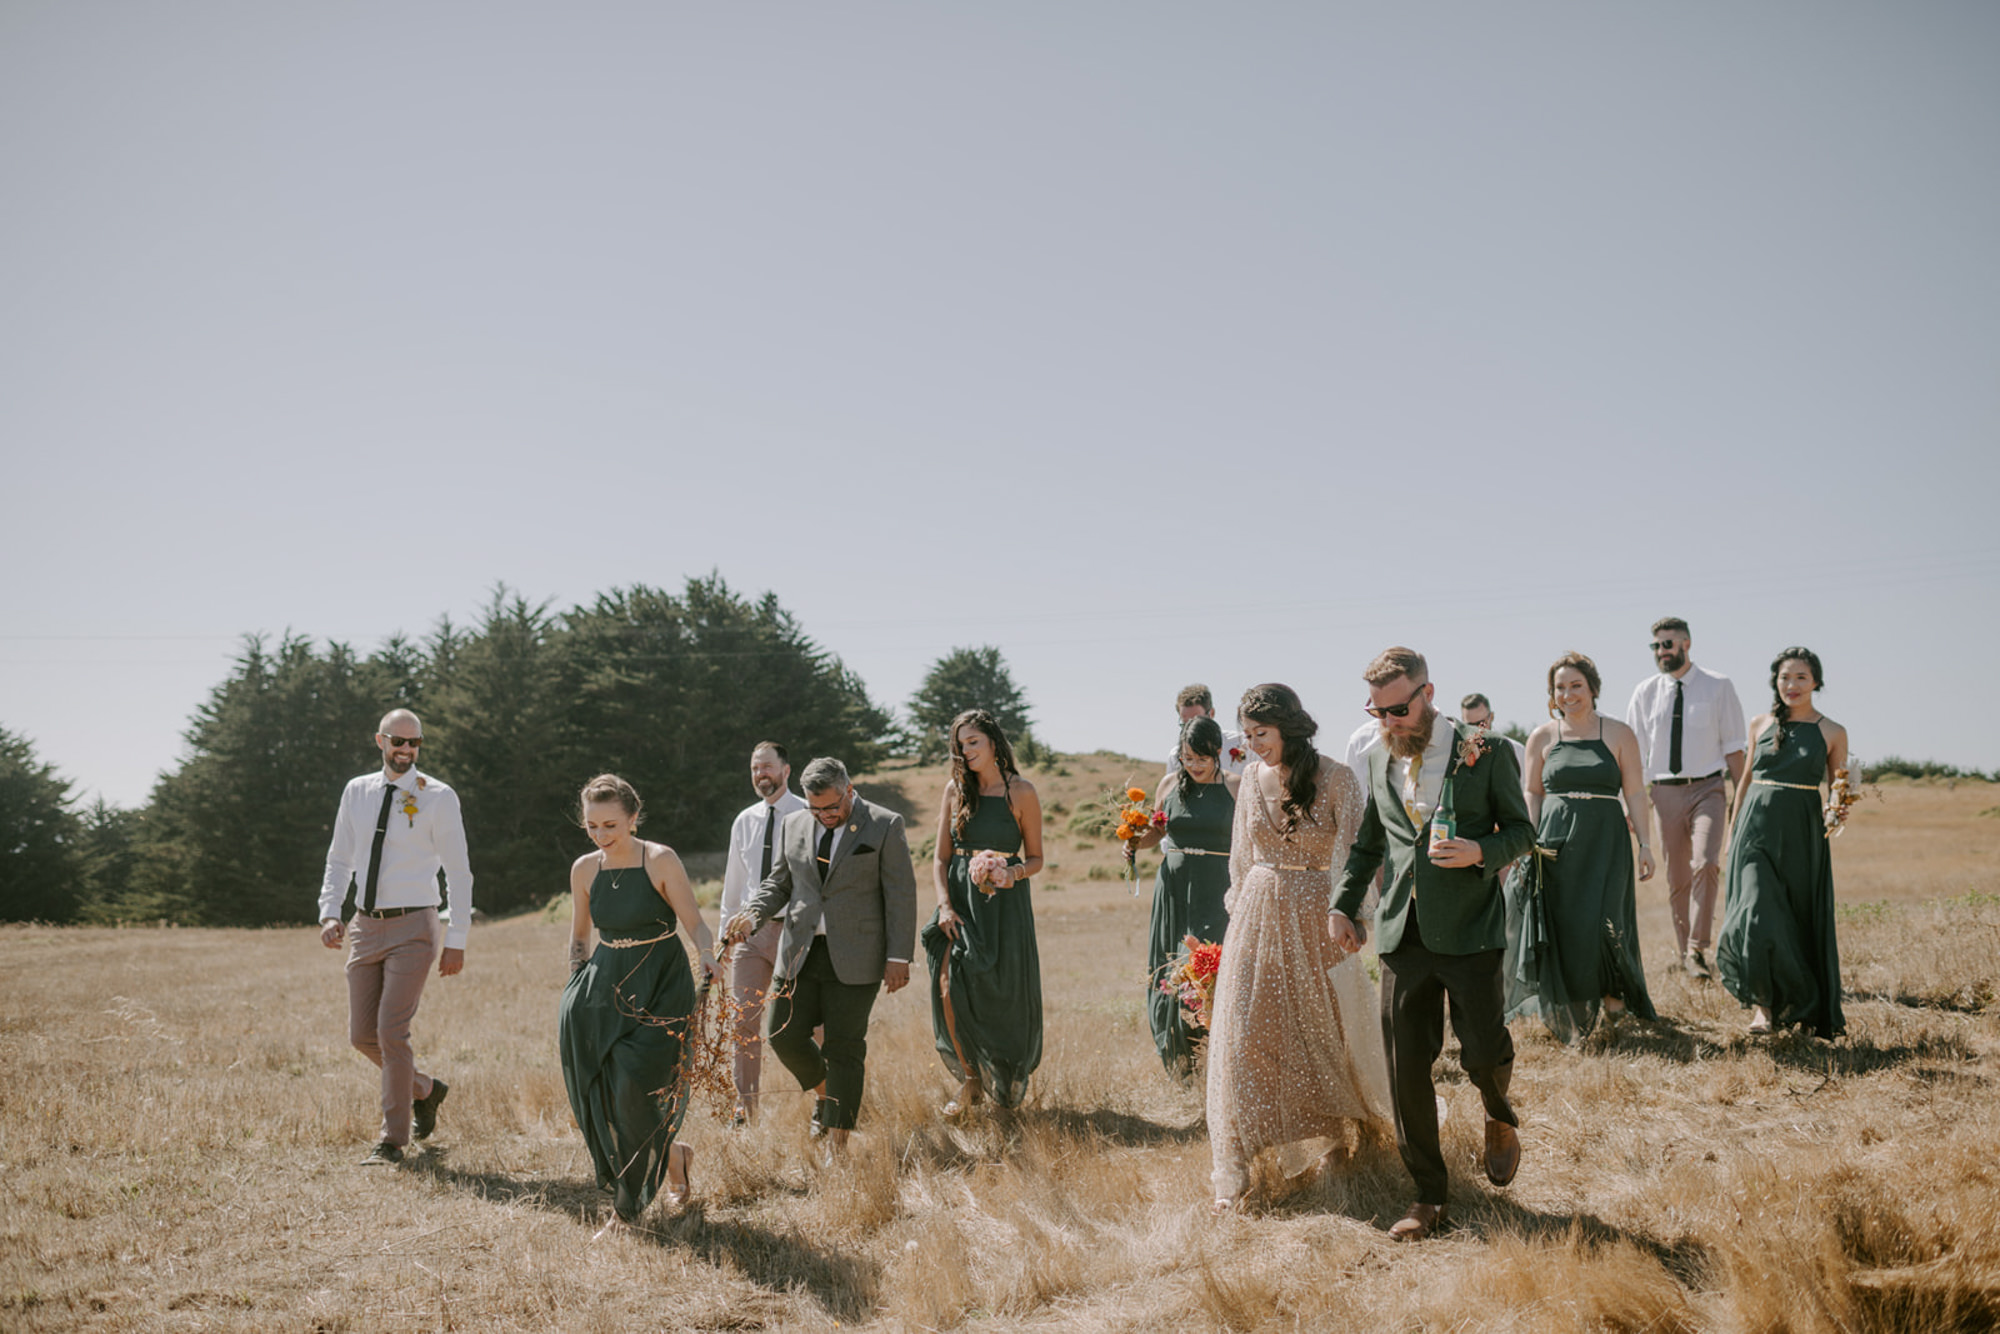 Candid bridal party in grassy field wearing forest green dresses - photo by Kristen Marie Parker